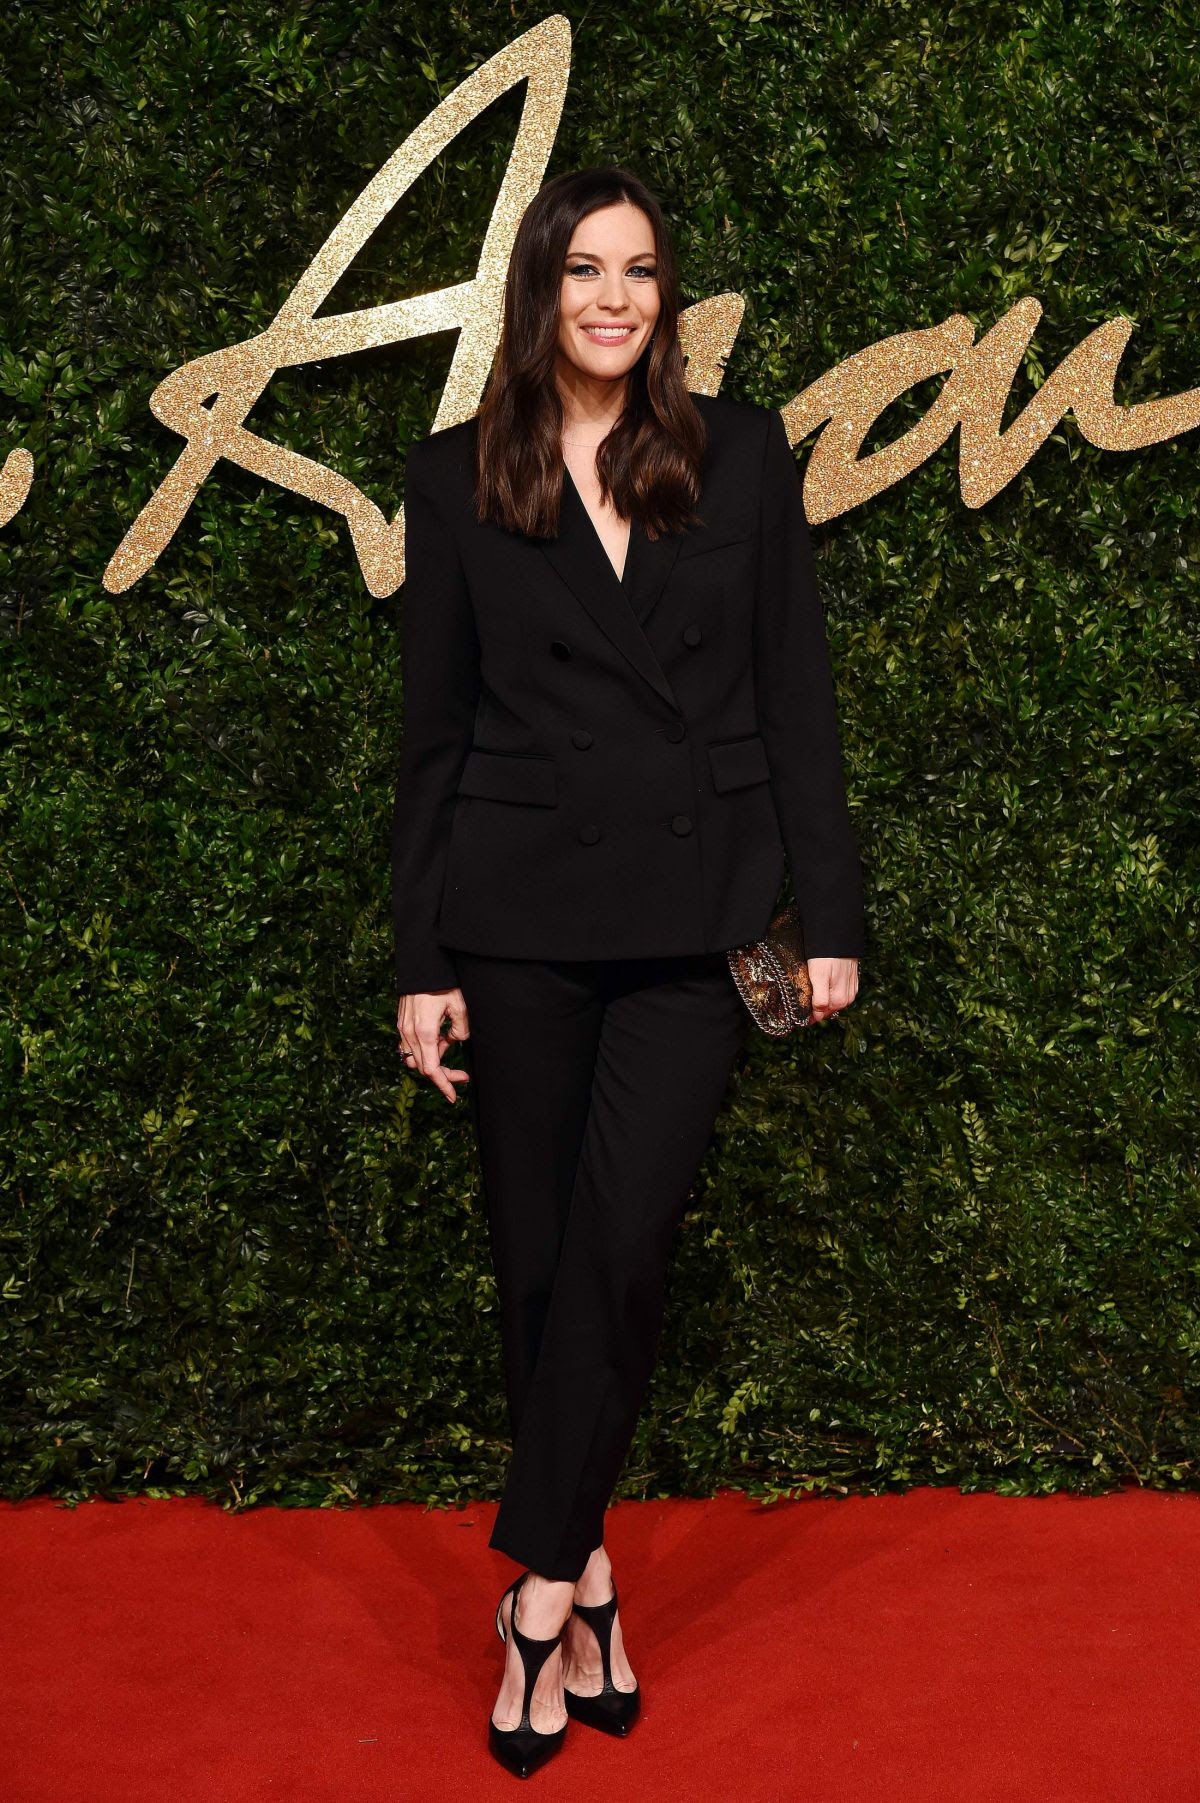 http://www.hawtcelebs.com/wp-content/uploads/2015/11/liv-tyler-at-2015-british-fashion-awards-in-london-11-23-2015_6.jpg